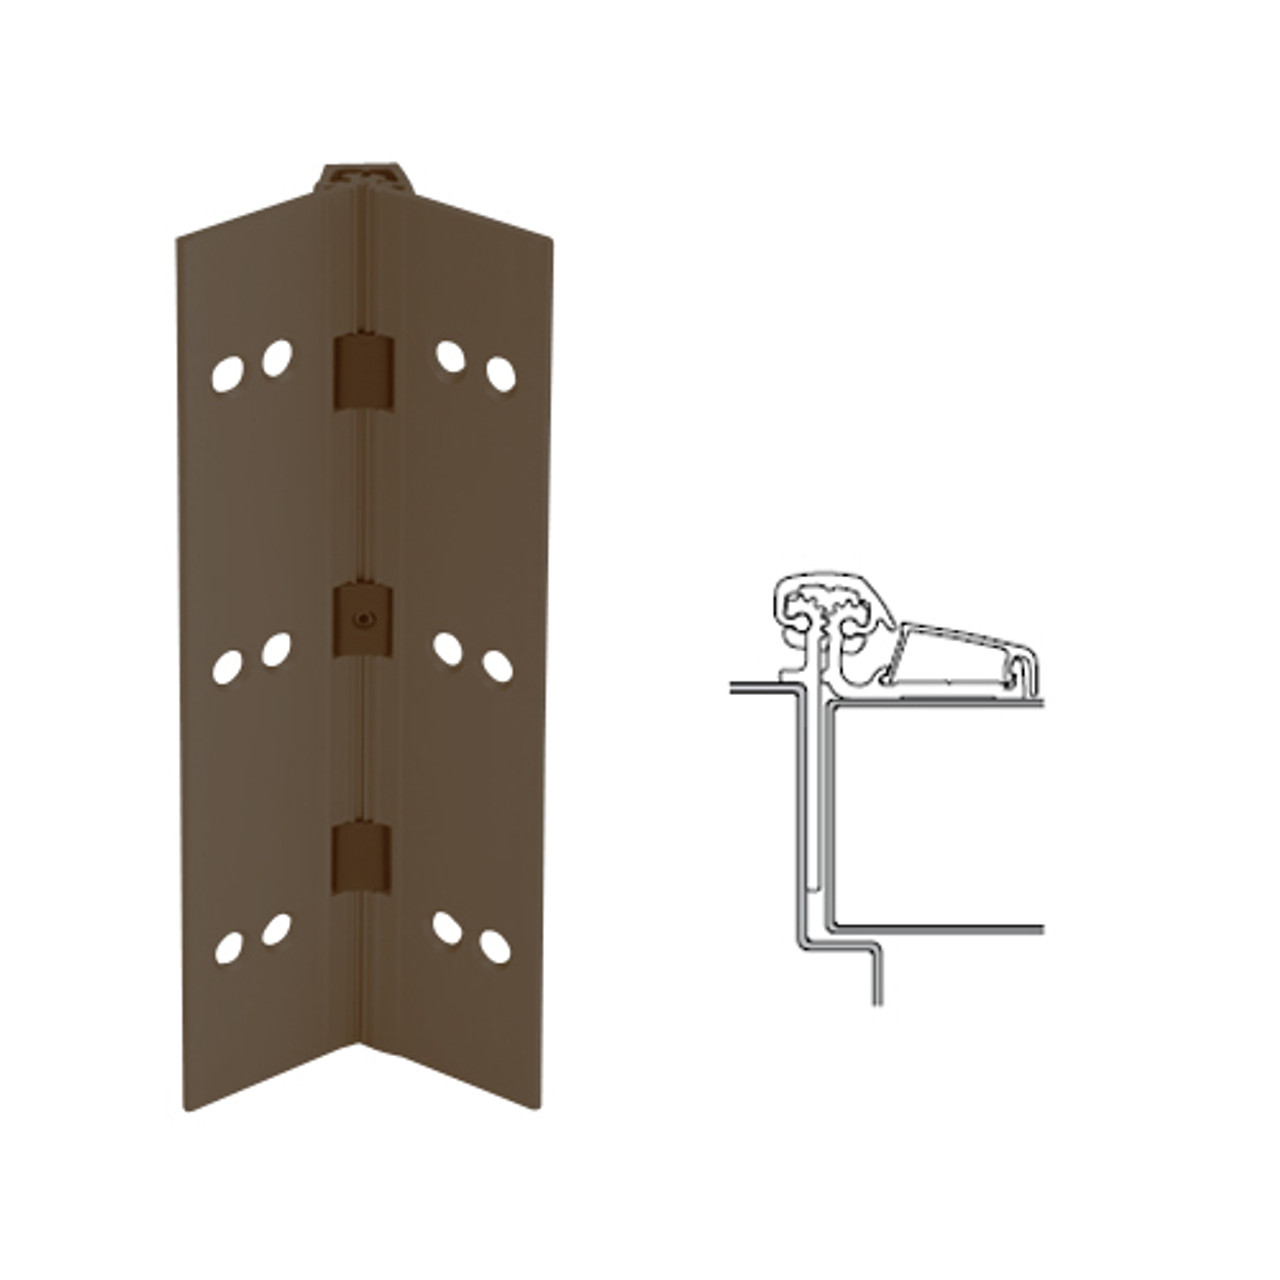 053XY-313AN-120-TF IVES Adjustable Half Surface Continuous Geared Hinges with Thread Forming Screws in Dark Bronze Anodized